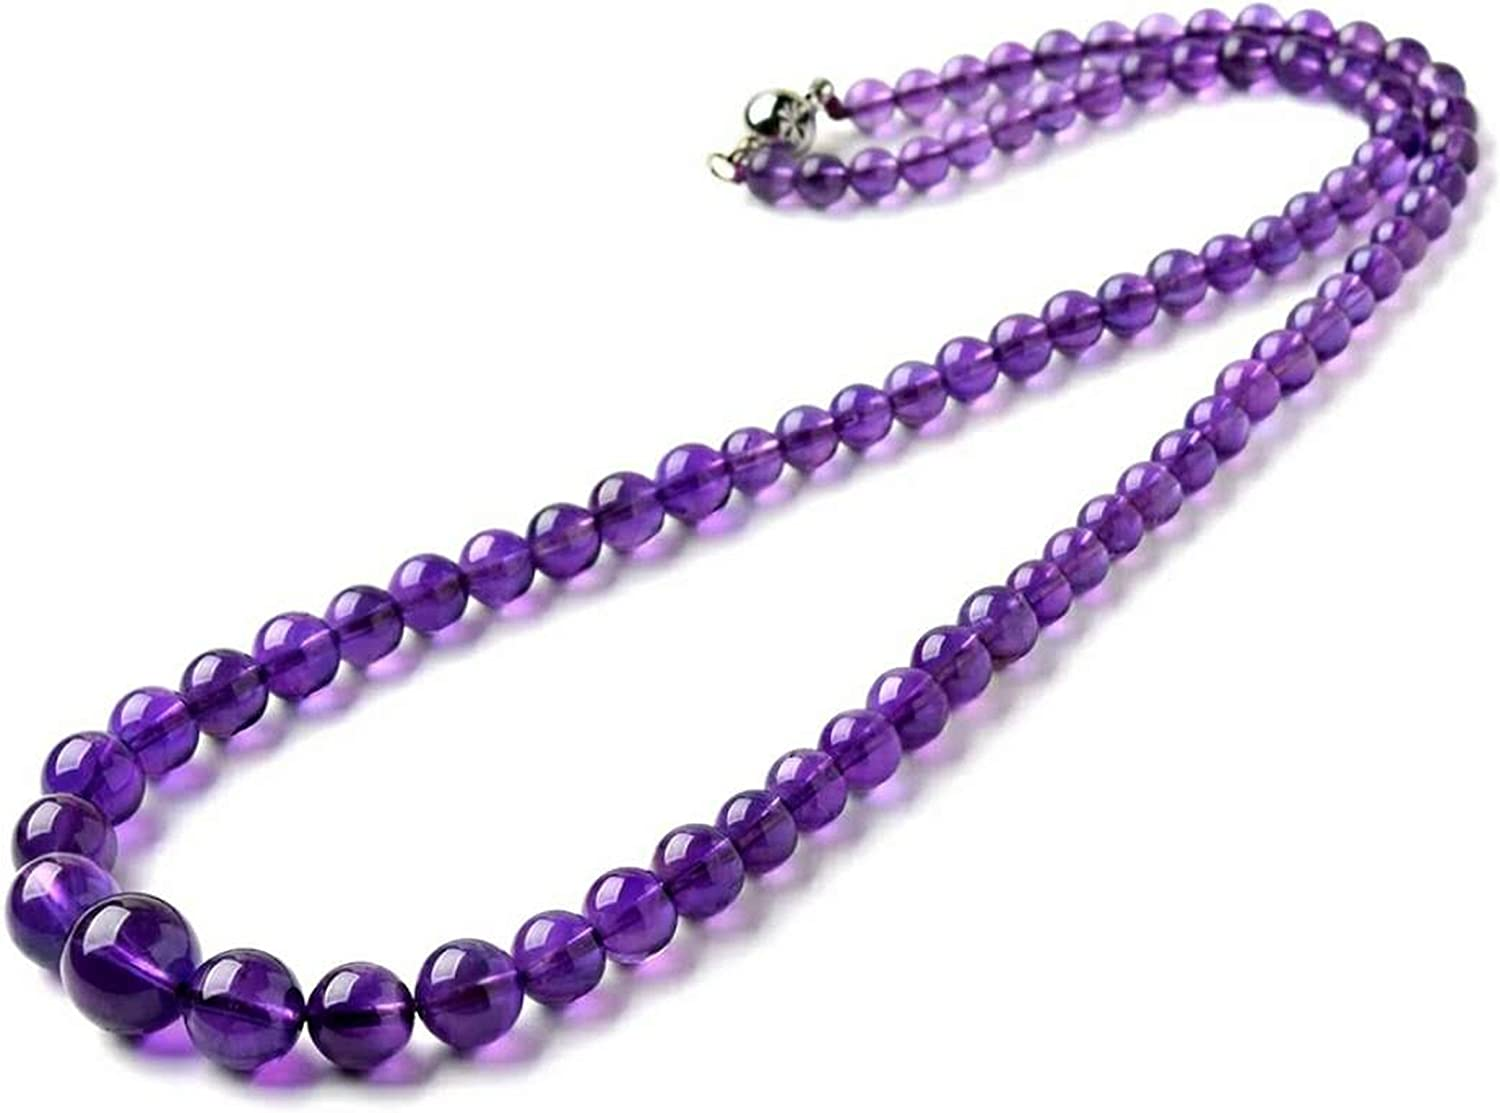 Dealing full price reduction Ranking TOP19 Purple Natural Amethyst Quartz Crystal Long Bead Necklace Round